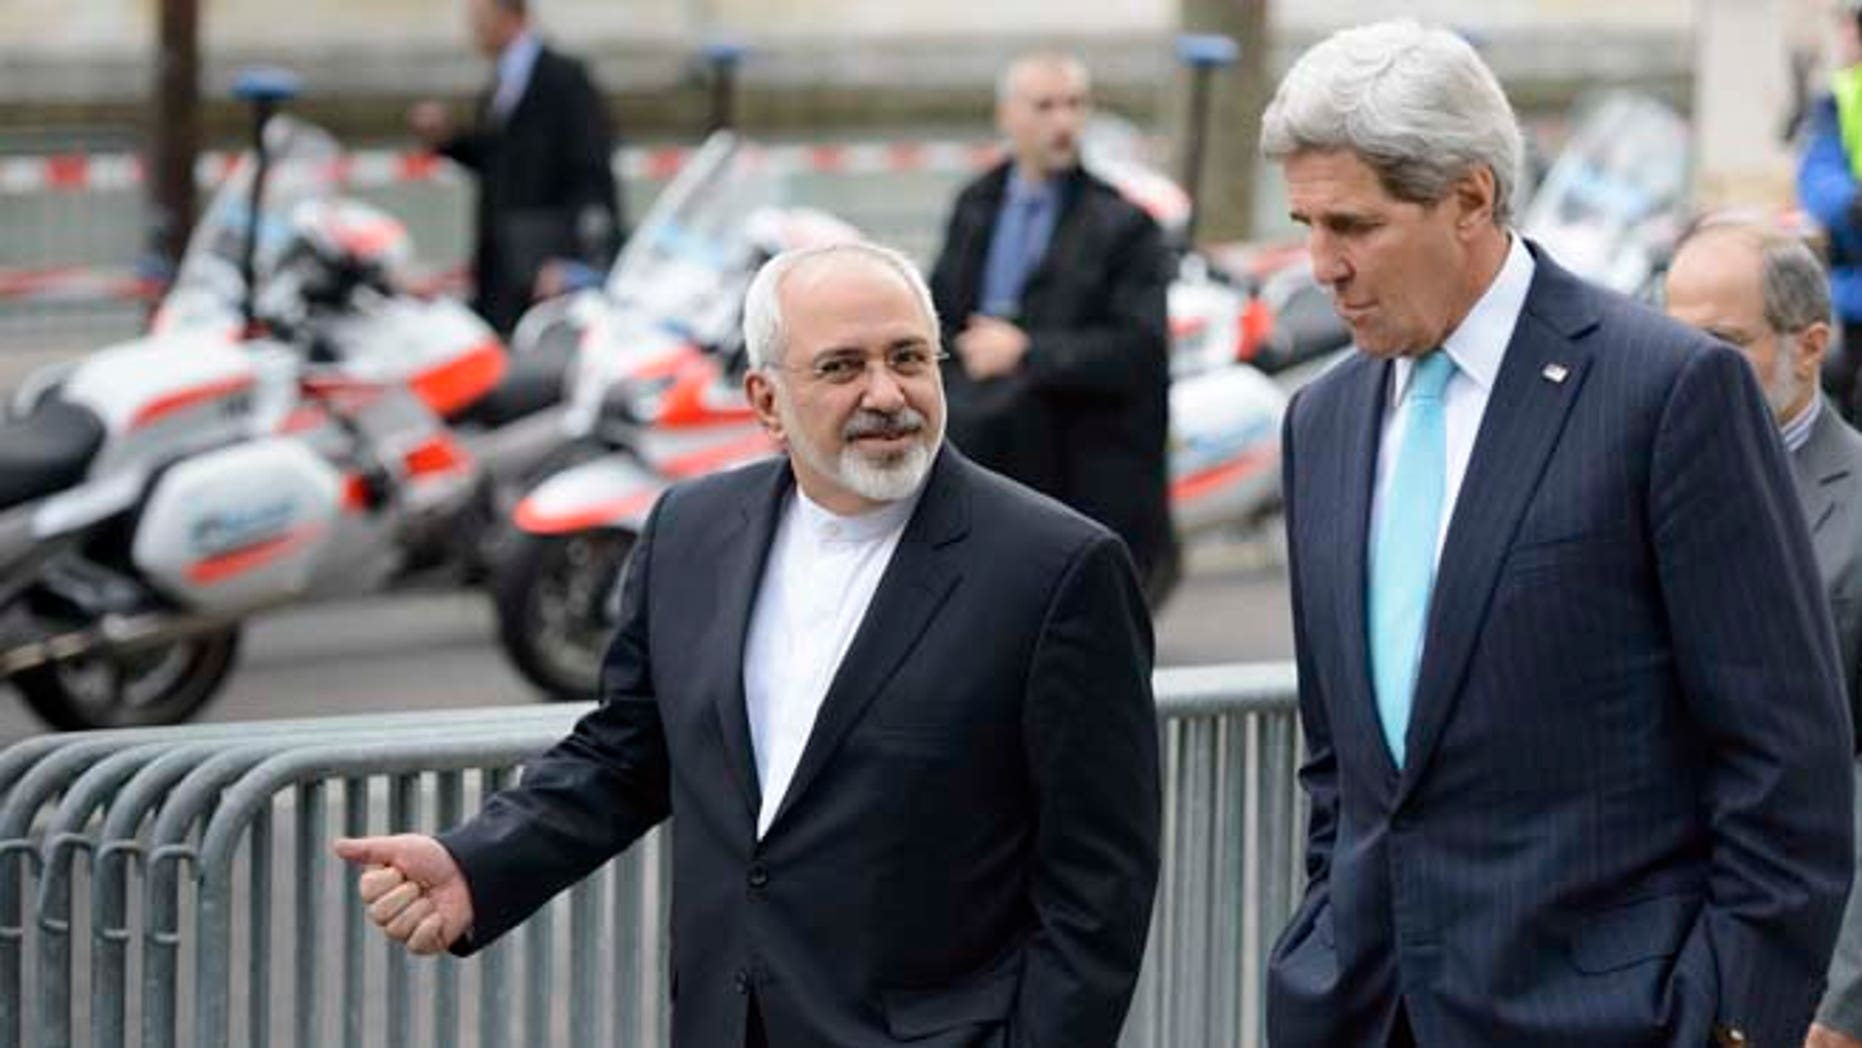 Although the UN is holding the talks, US Secretary of State John Kerry, and Iranian Foreign Minister Mohammad Javad Zarif have been doing most of the negotiating in Geneva. (AP)